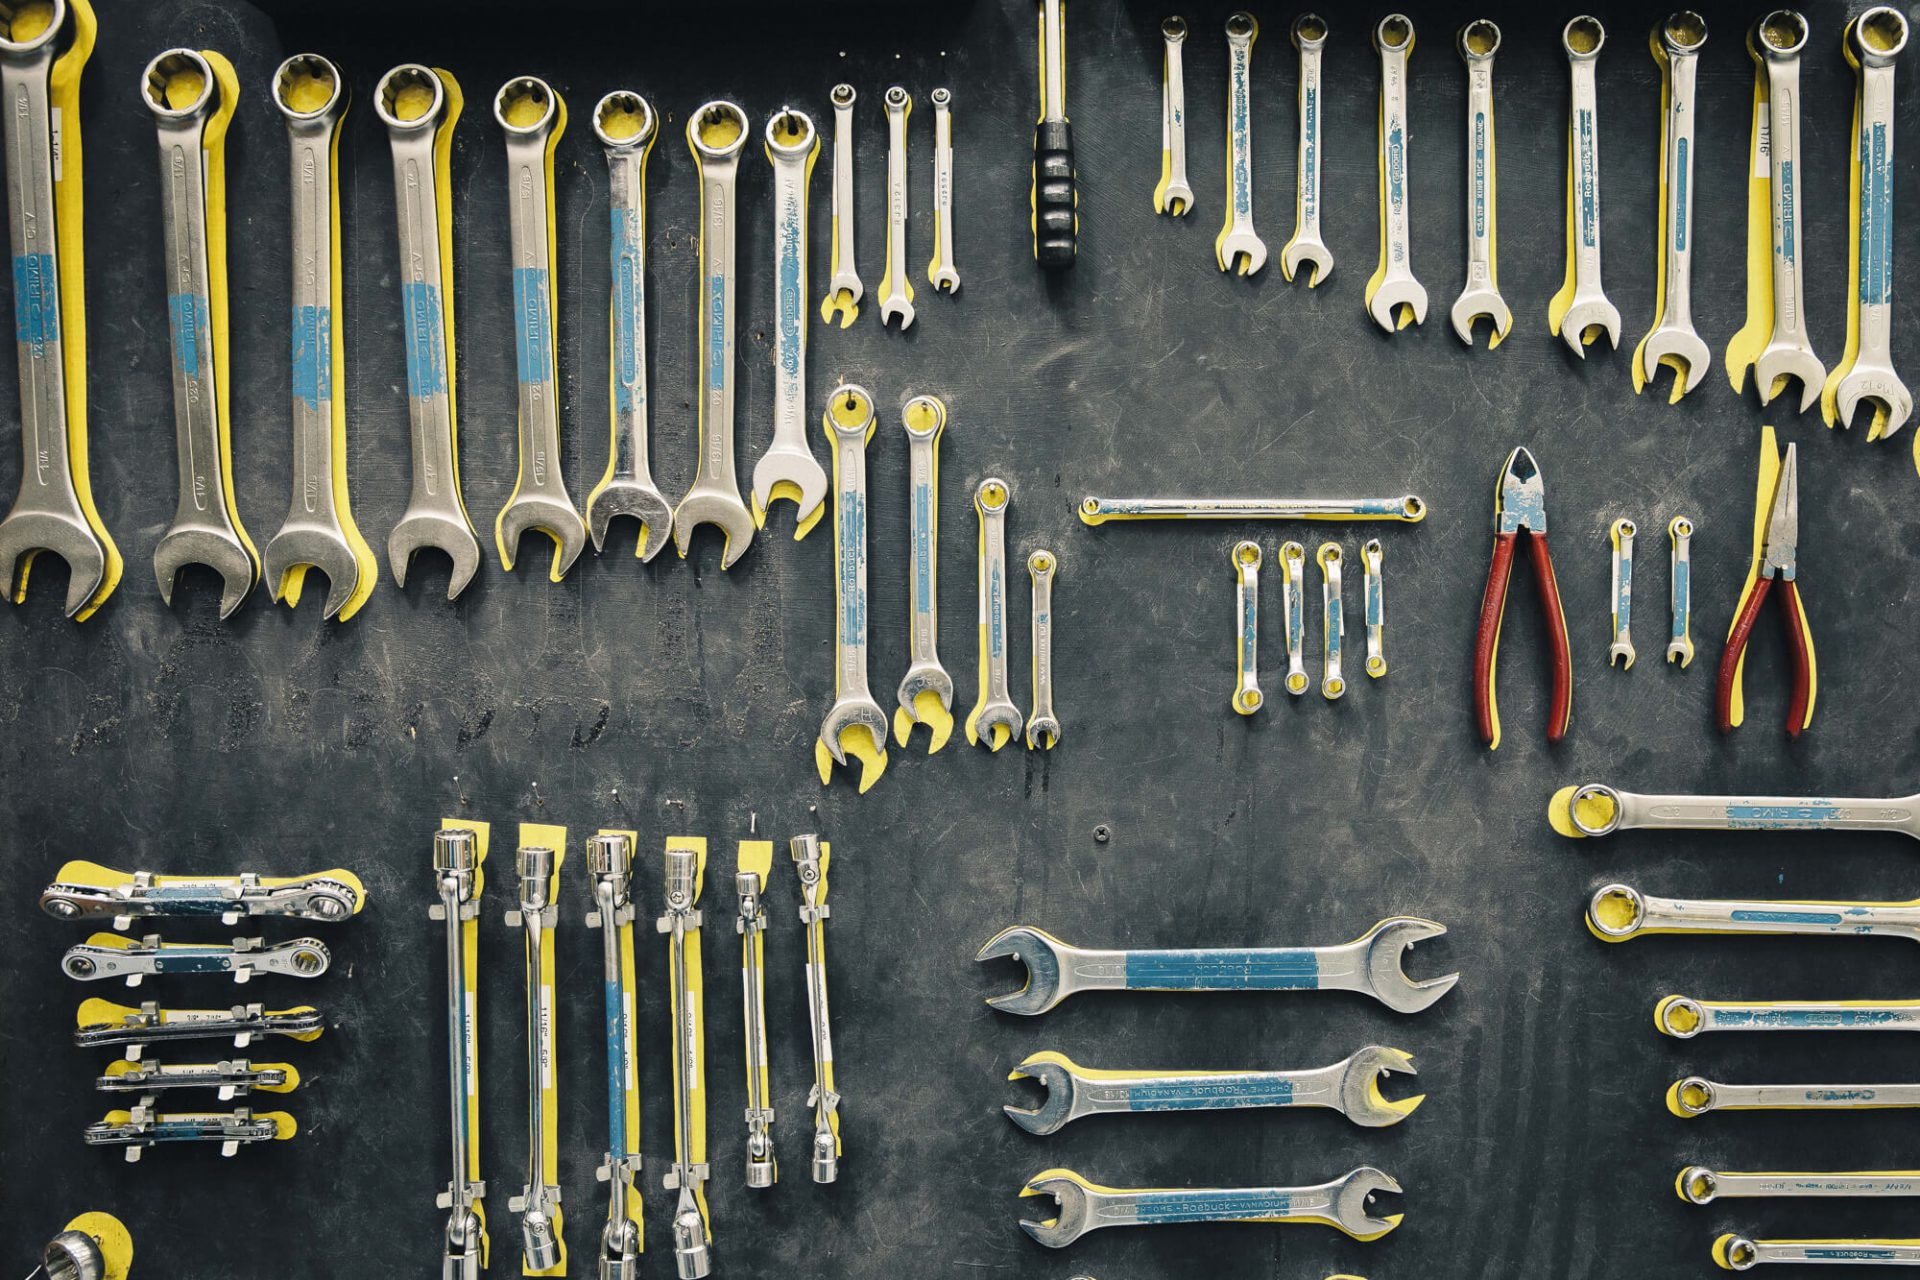 Wrenches and pliers hang up on a wall - tools for engineering courses in Bristol